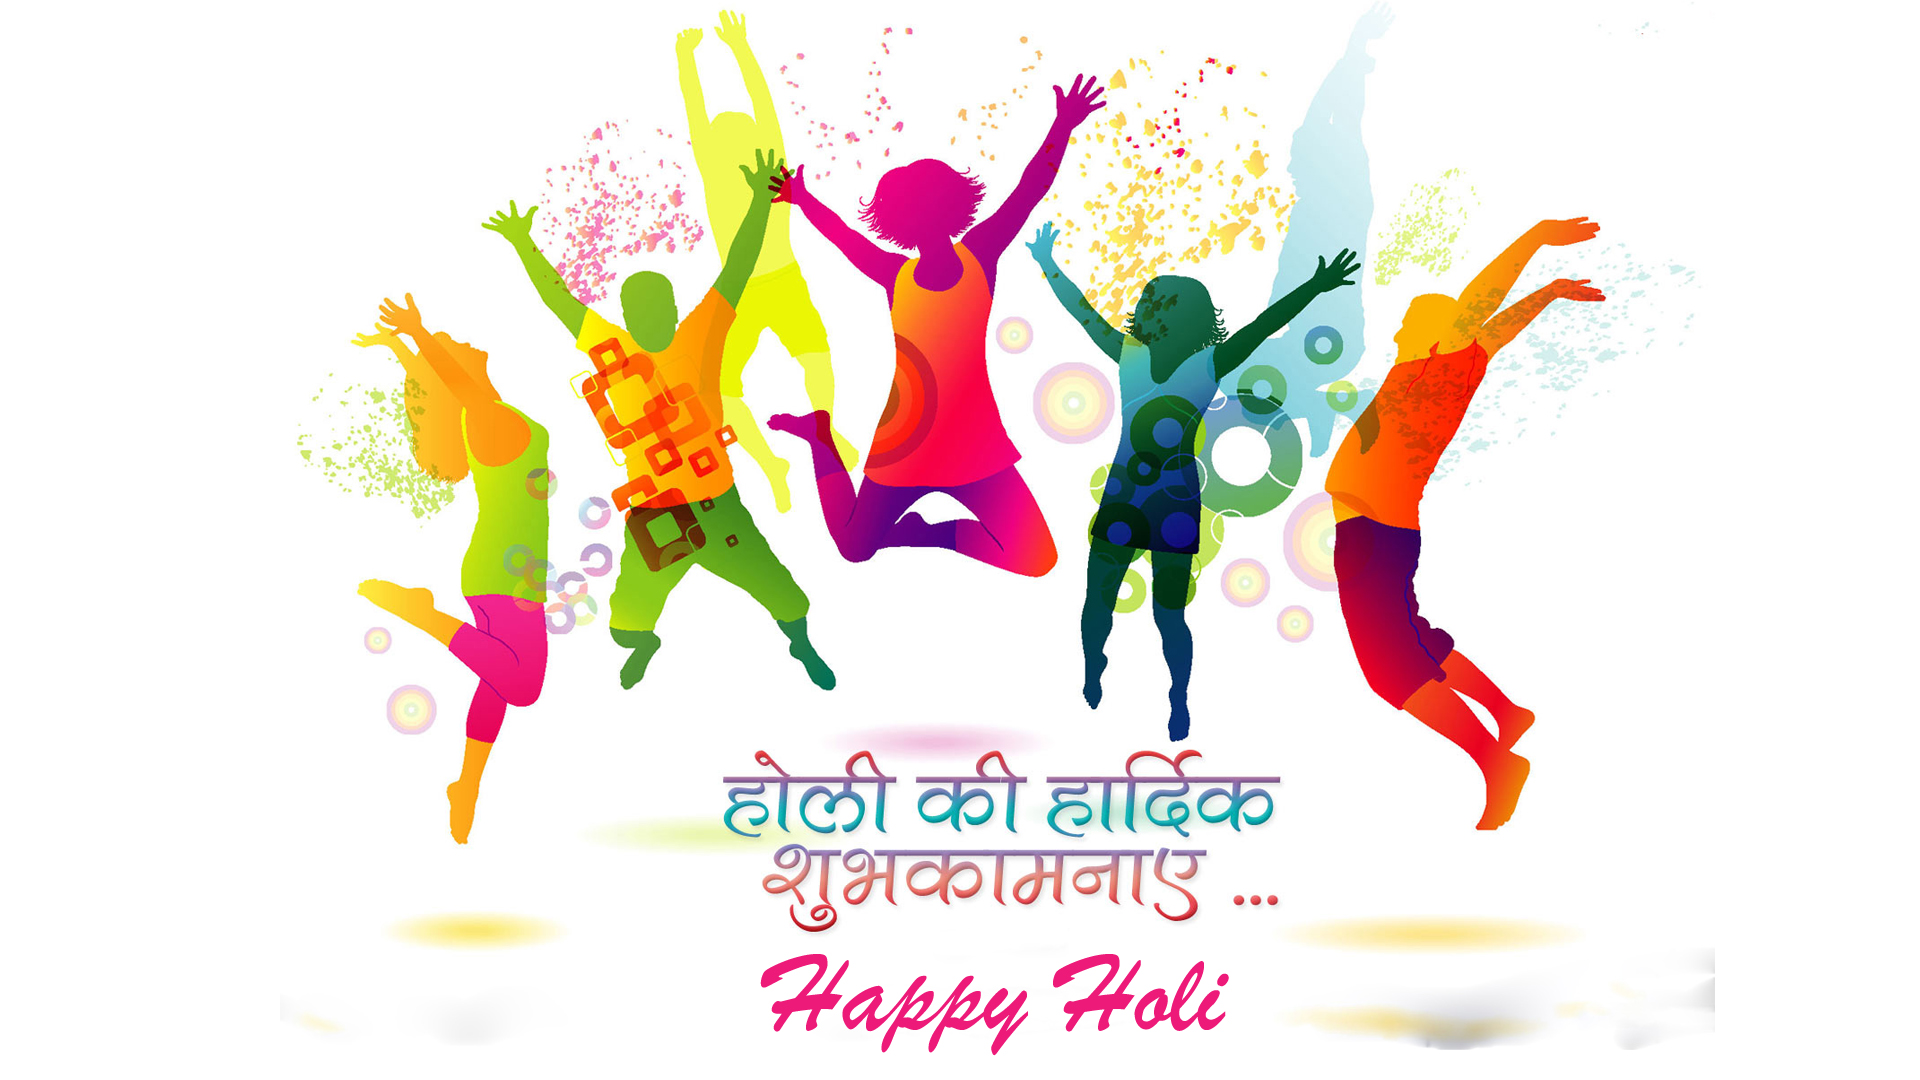 Happy Holi Images Hd Wallpapers Pics Free Download